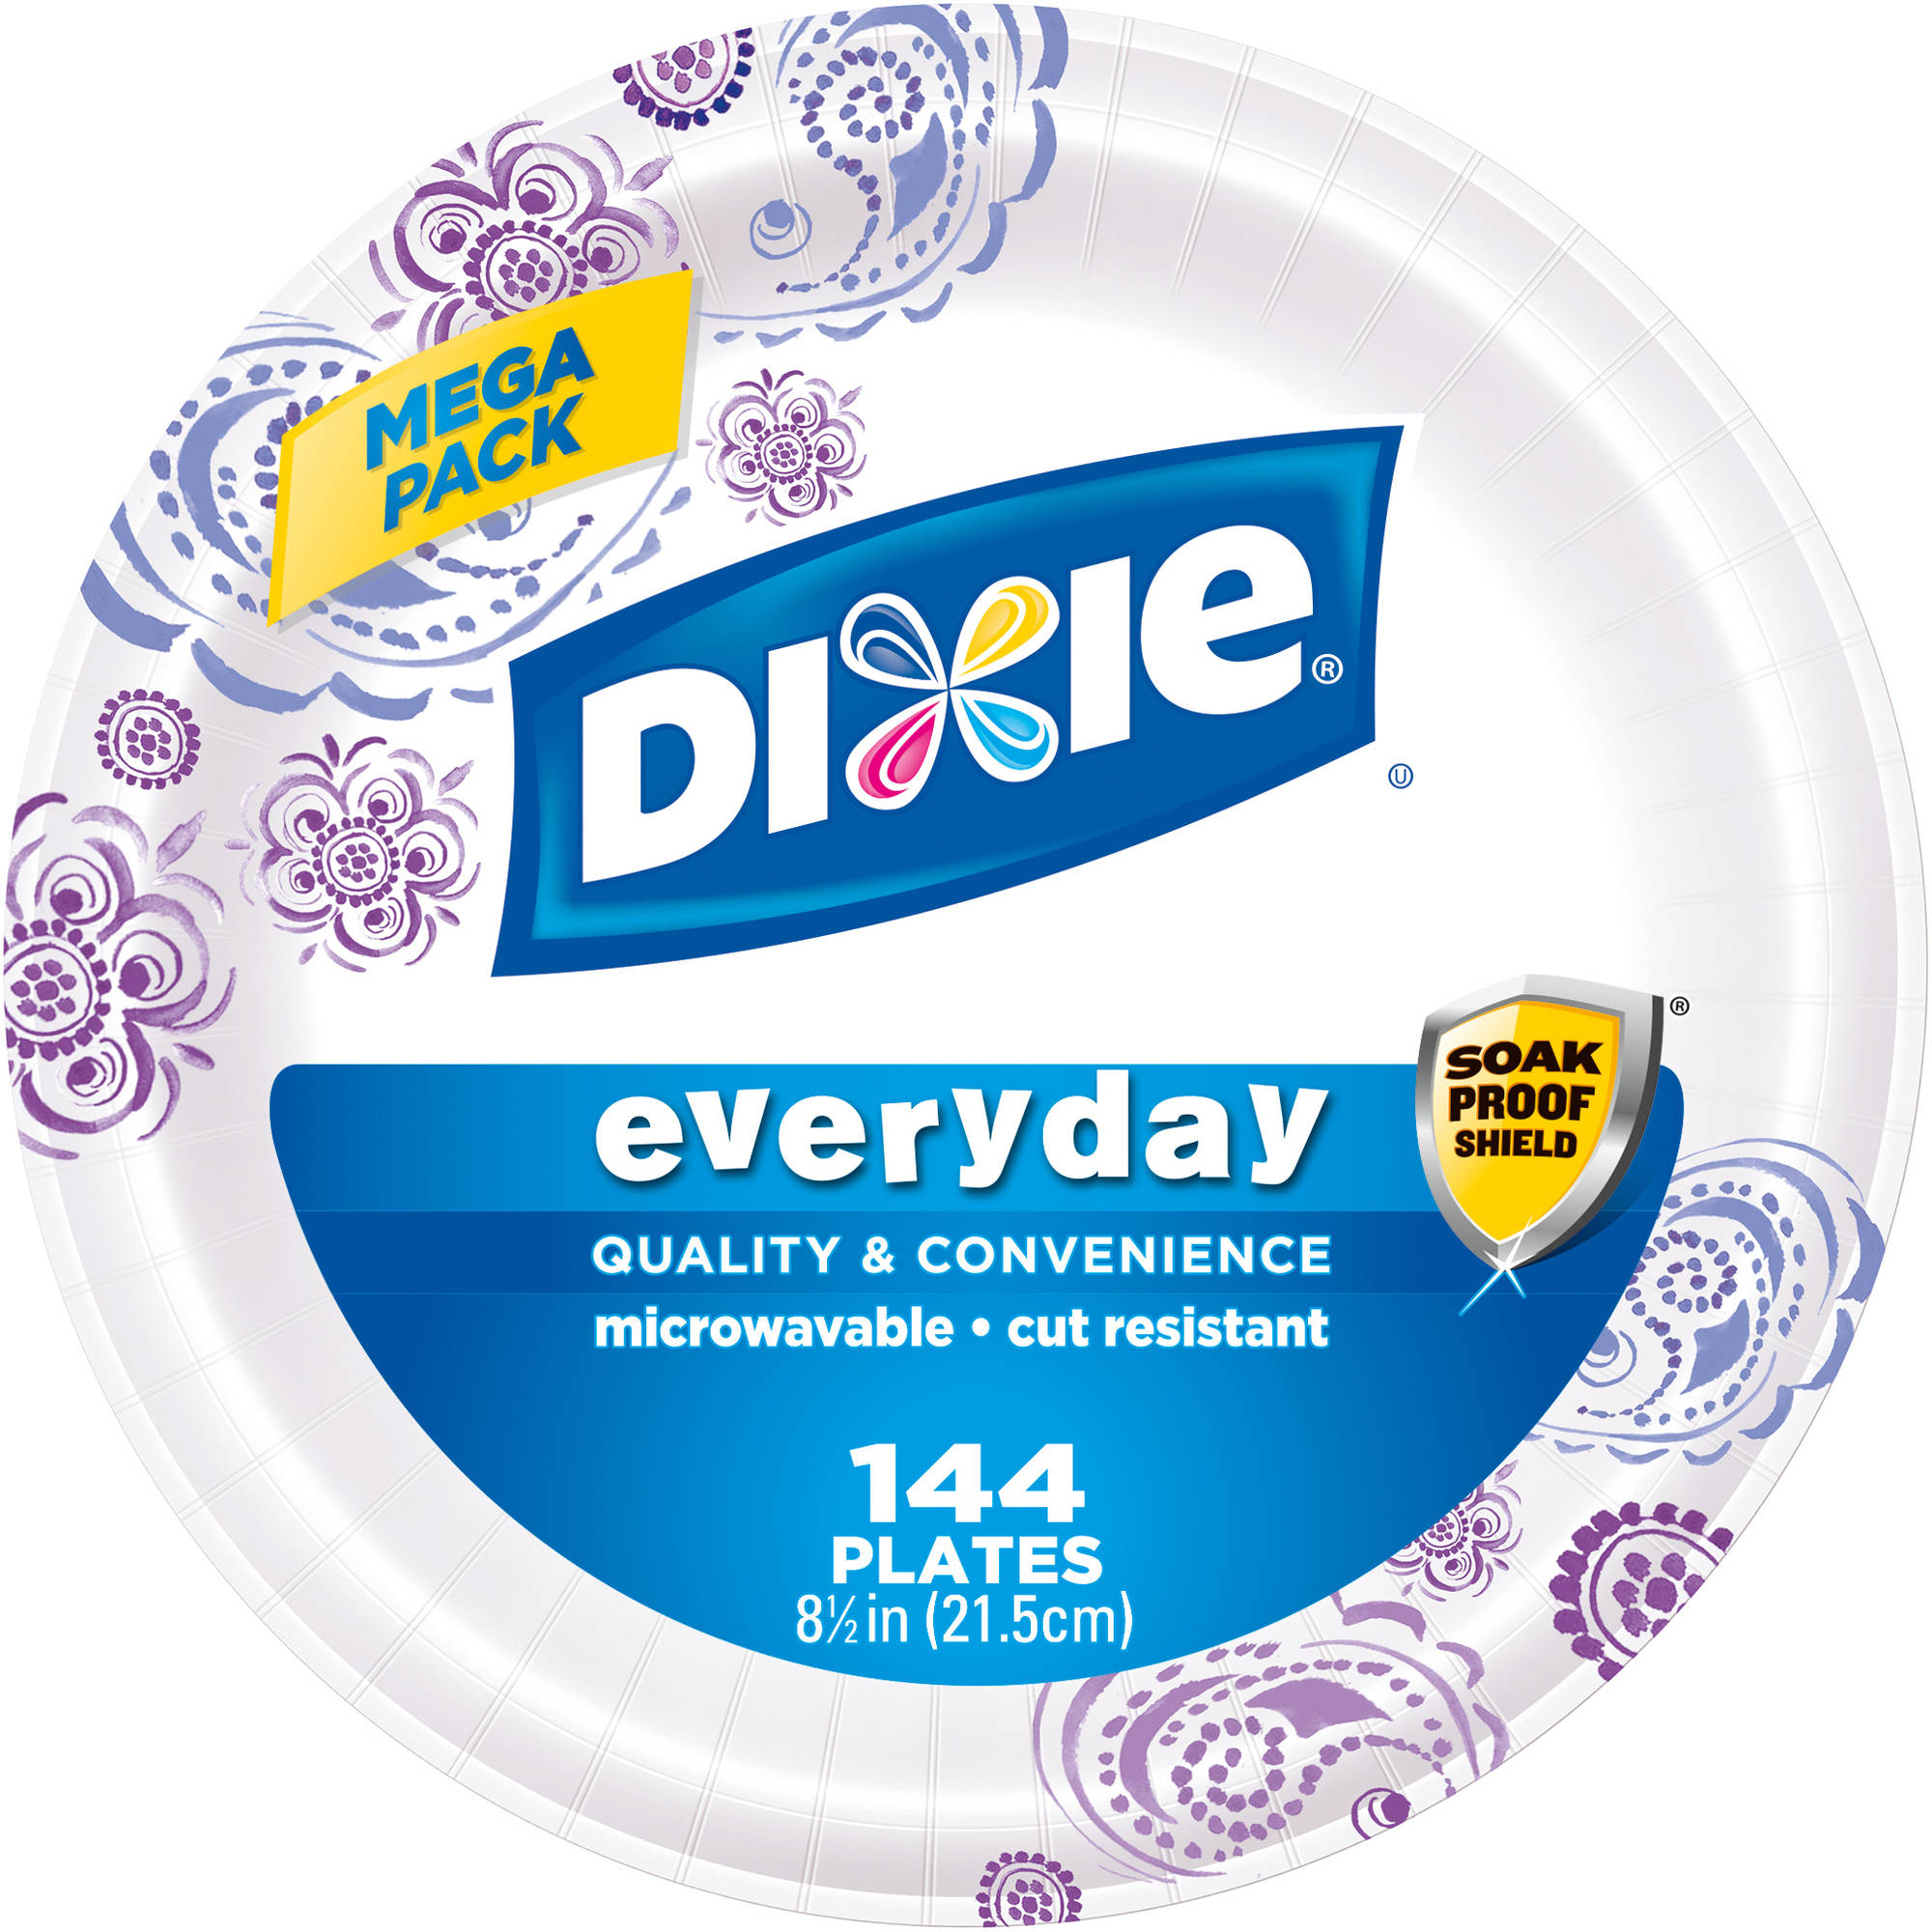 Dixie Everyday Paper Plates, 144 count